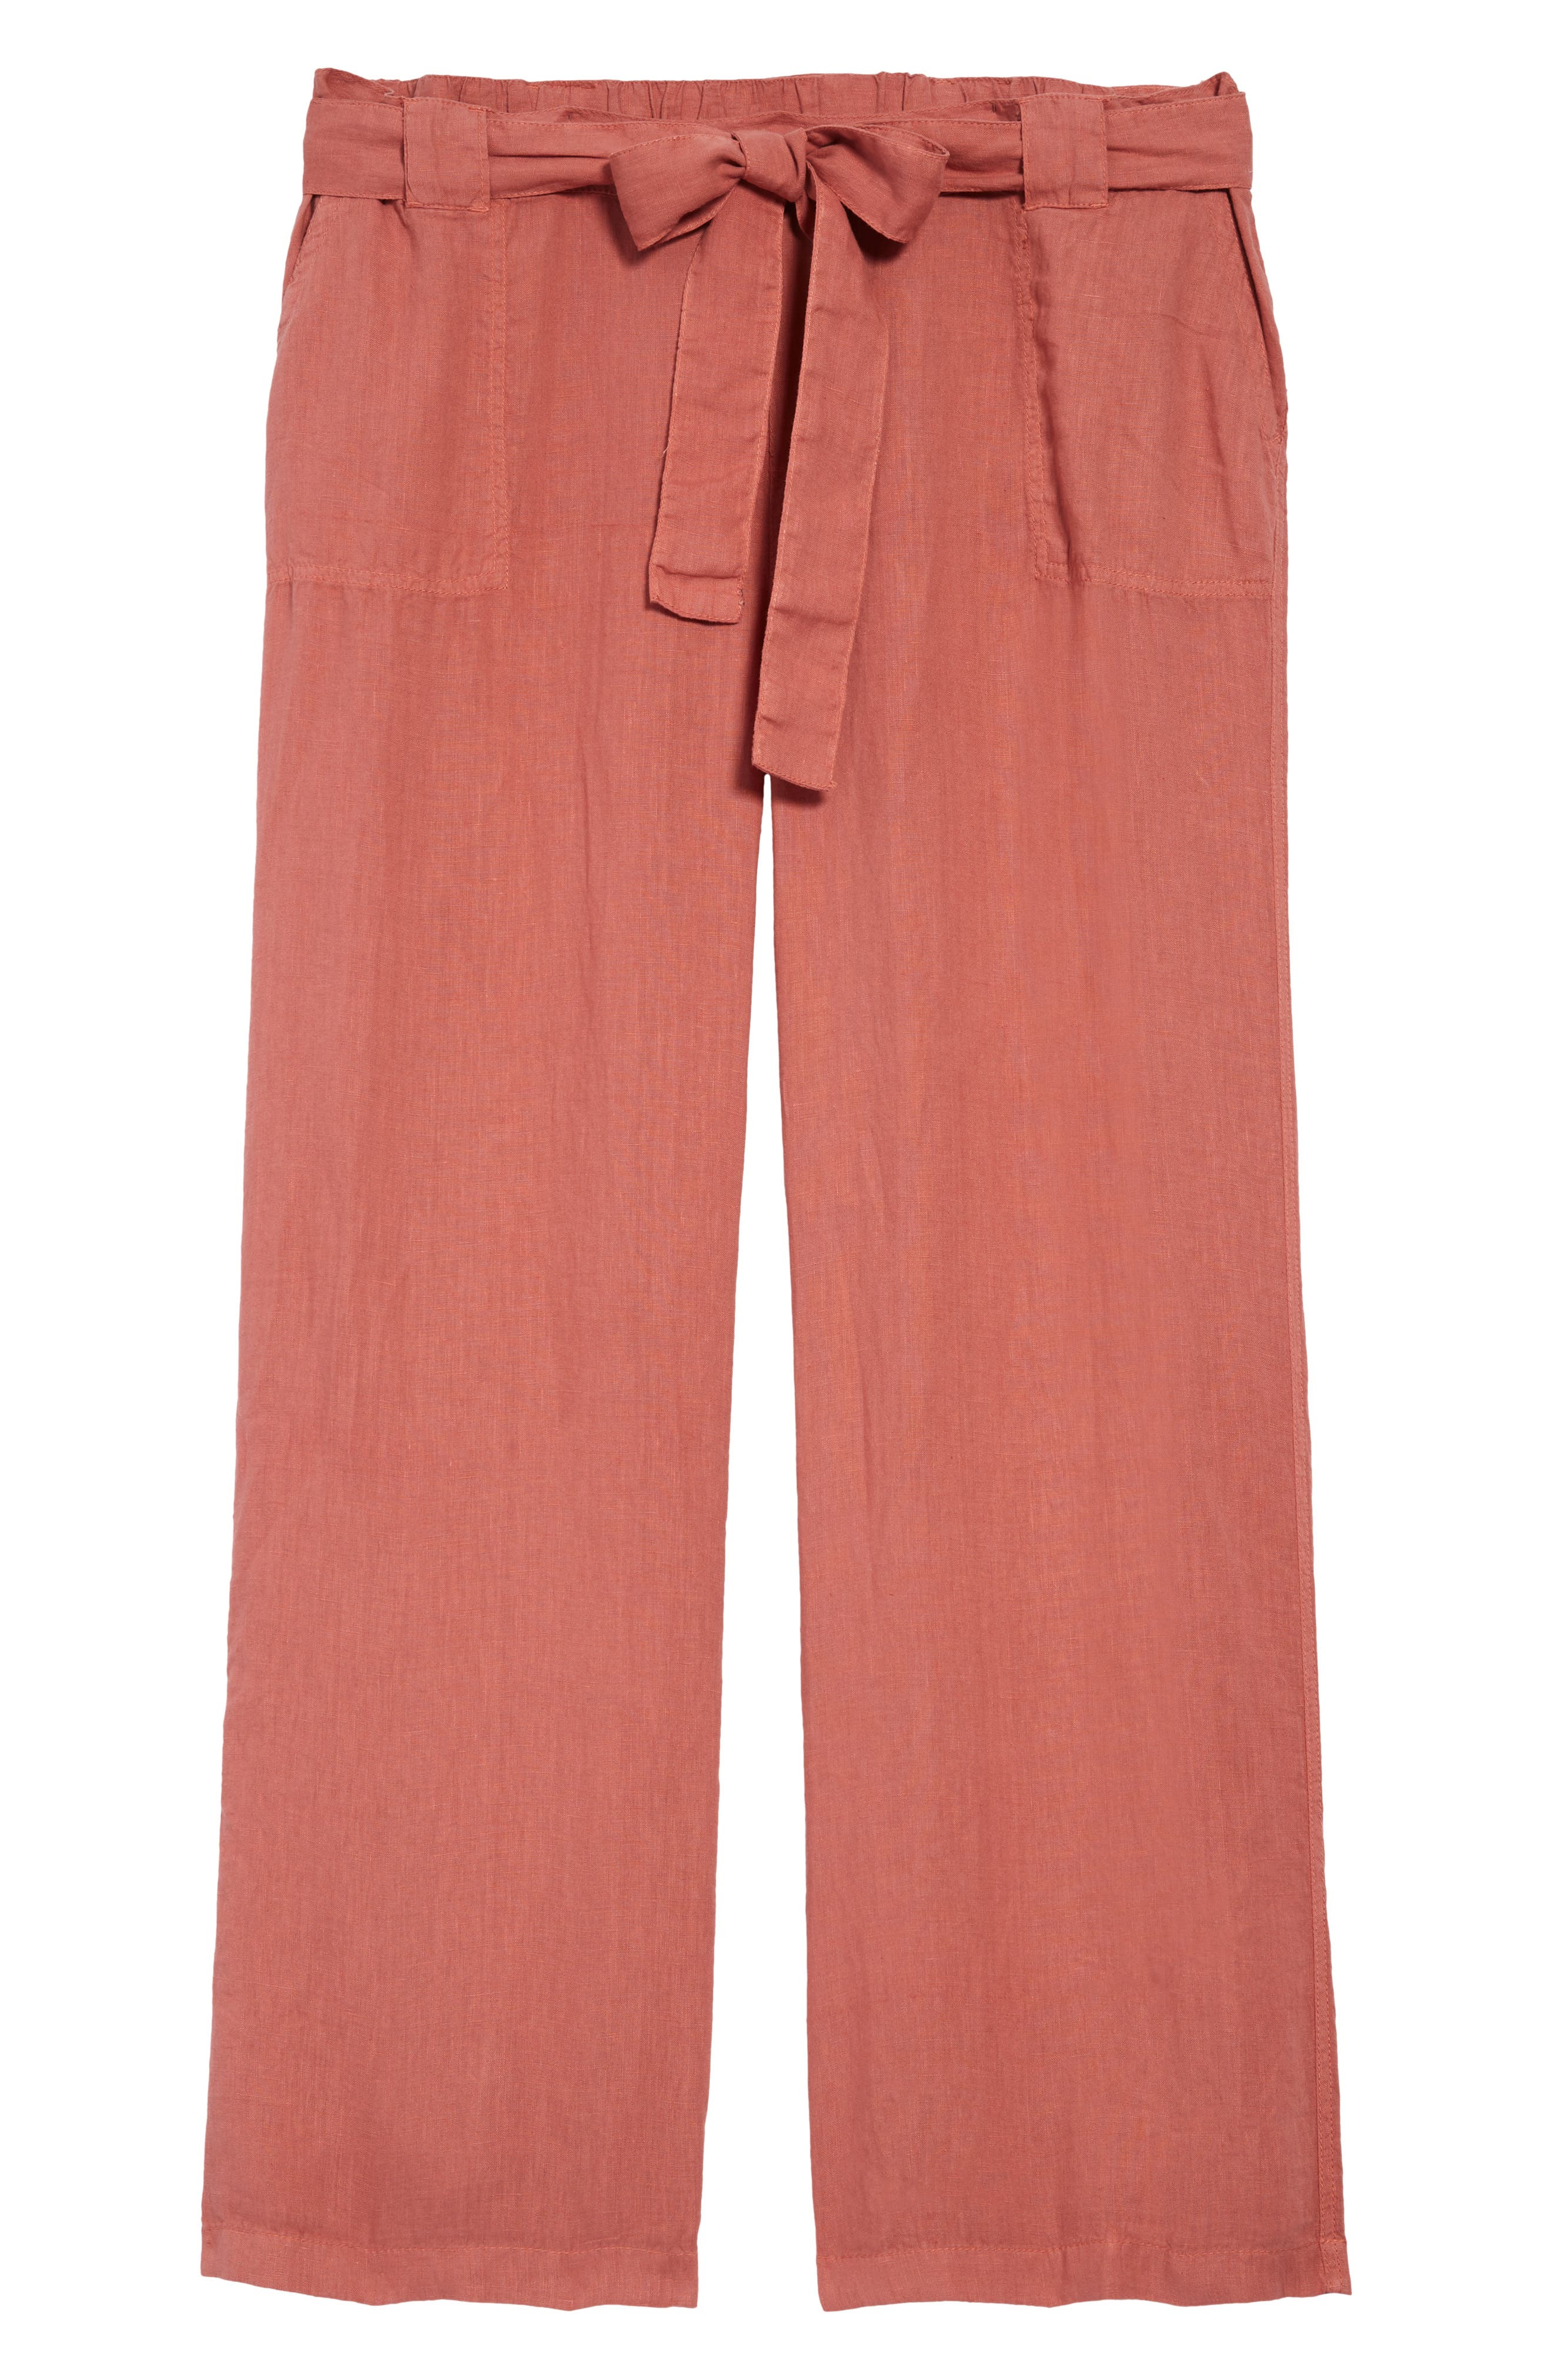 Part of your kicked-back uniform, tie-waist pants feature the cool, breathable comfort of crisp linen enhanced with a breezy flared-leg cut. Style Name: Caslon New Belted Linen Pants (Plus Size). Style Number: 6005912 1. Available in stores.